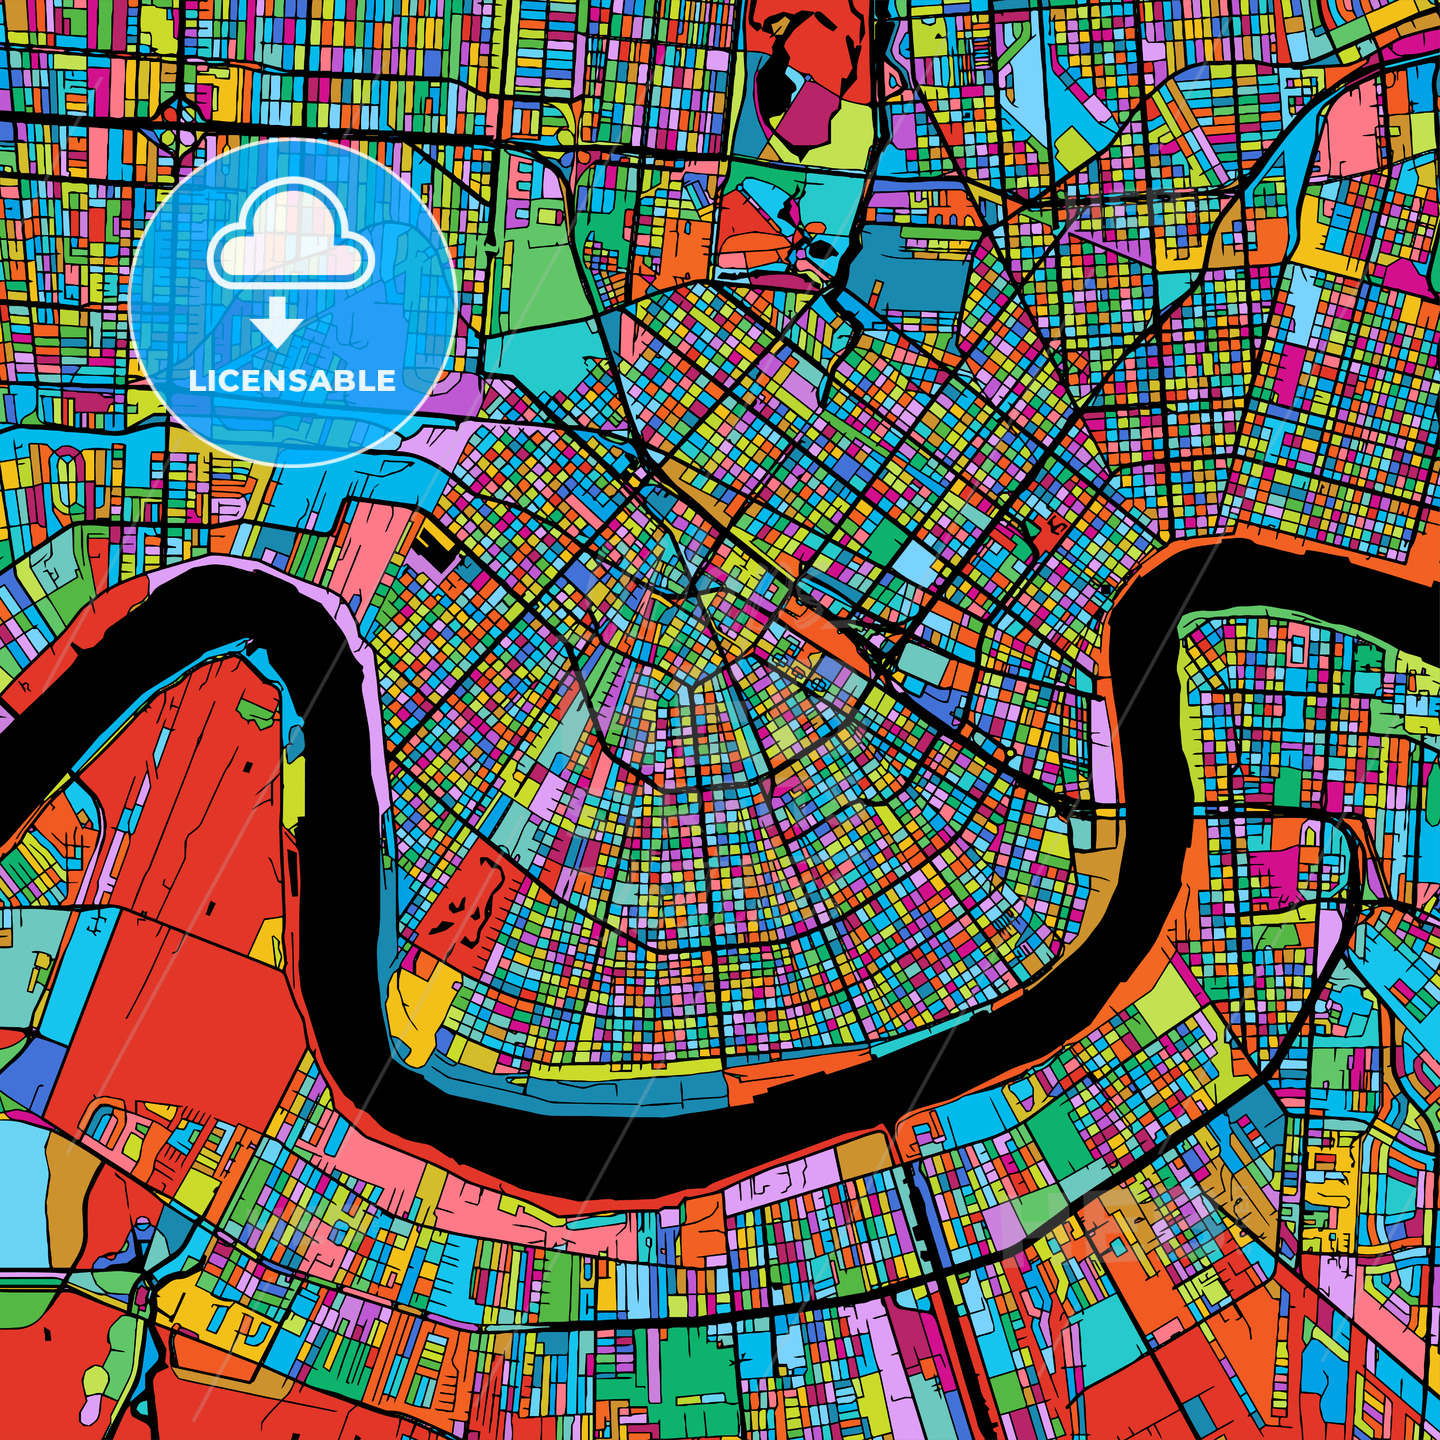 New Orleans Colorful Vector Map on Black - HEBSTREIT's Sketches